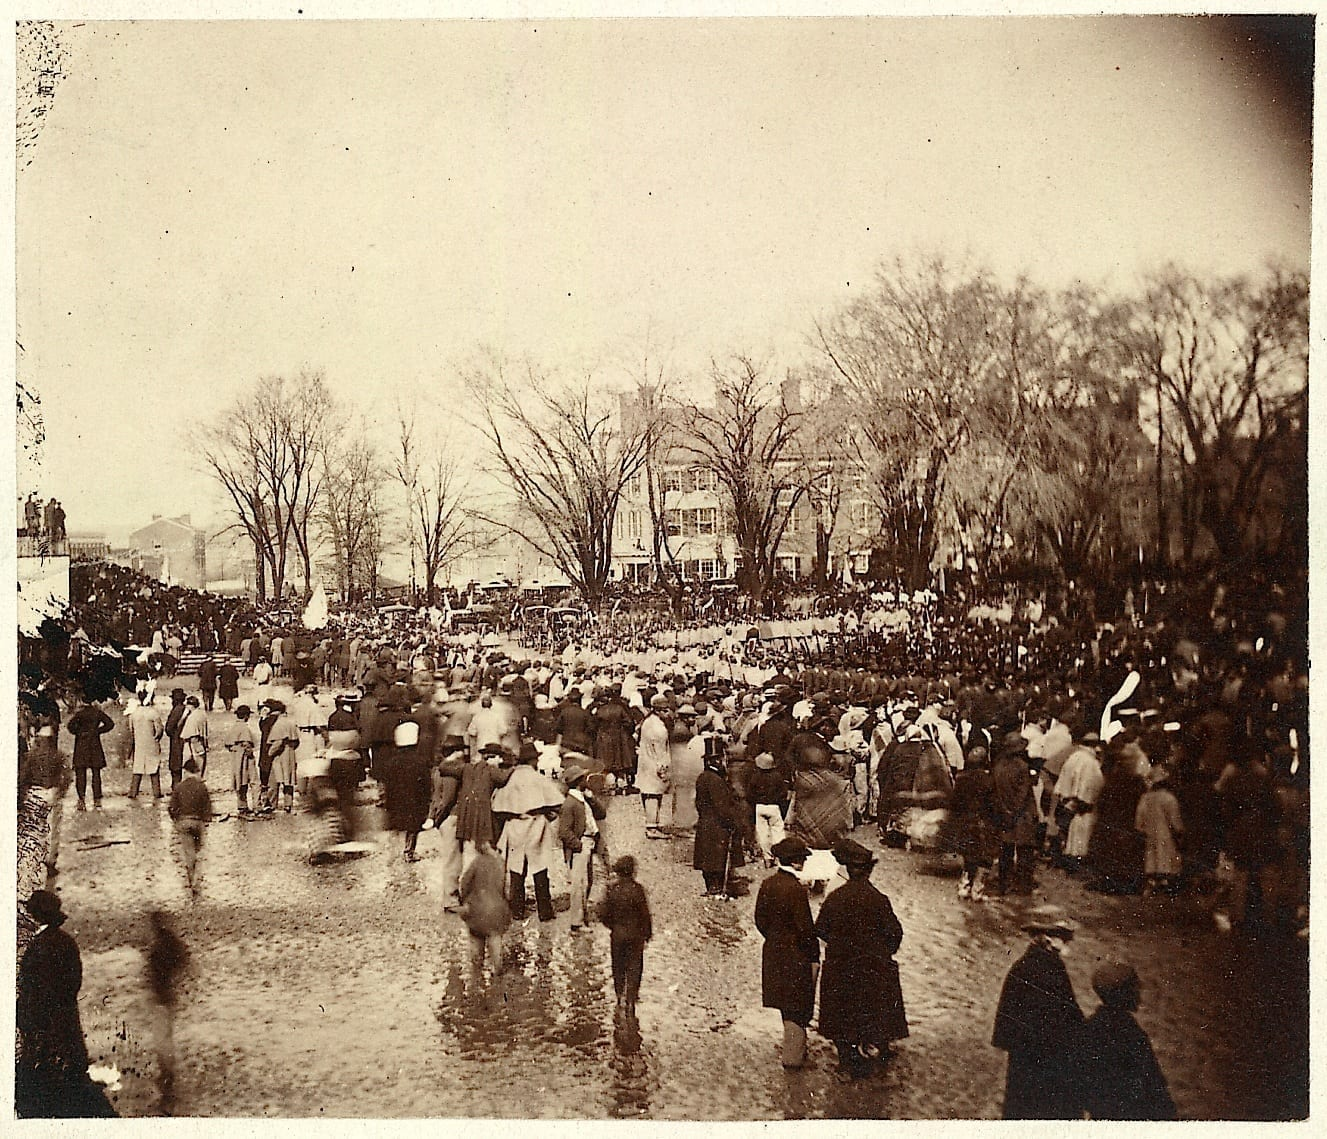 Extremely Rare 1865 Photo of Lincoln's Second Inauguration